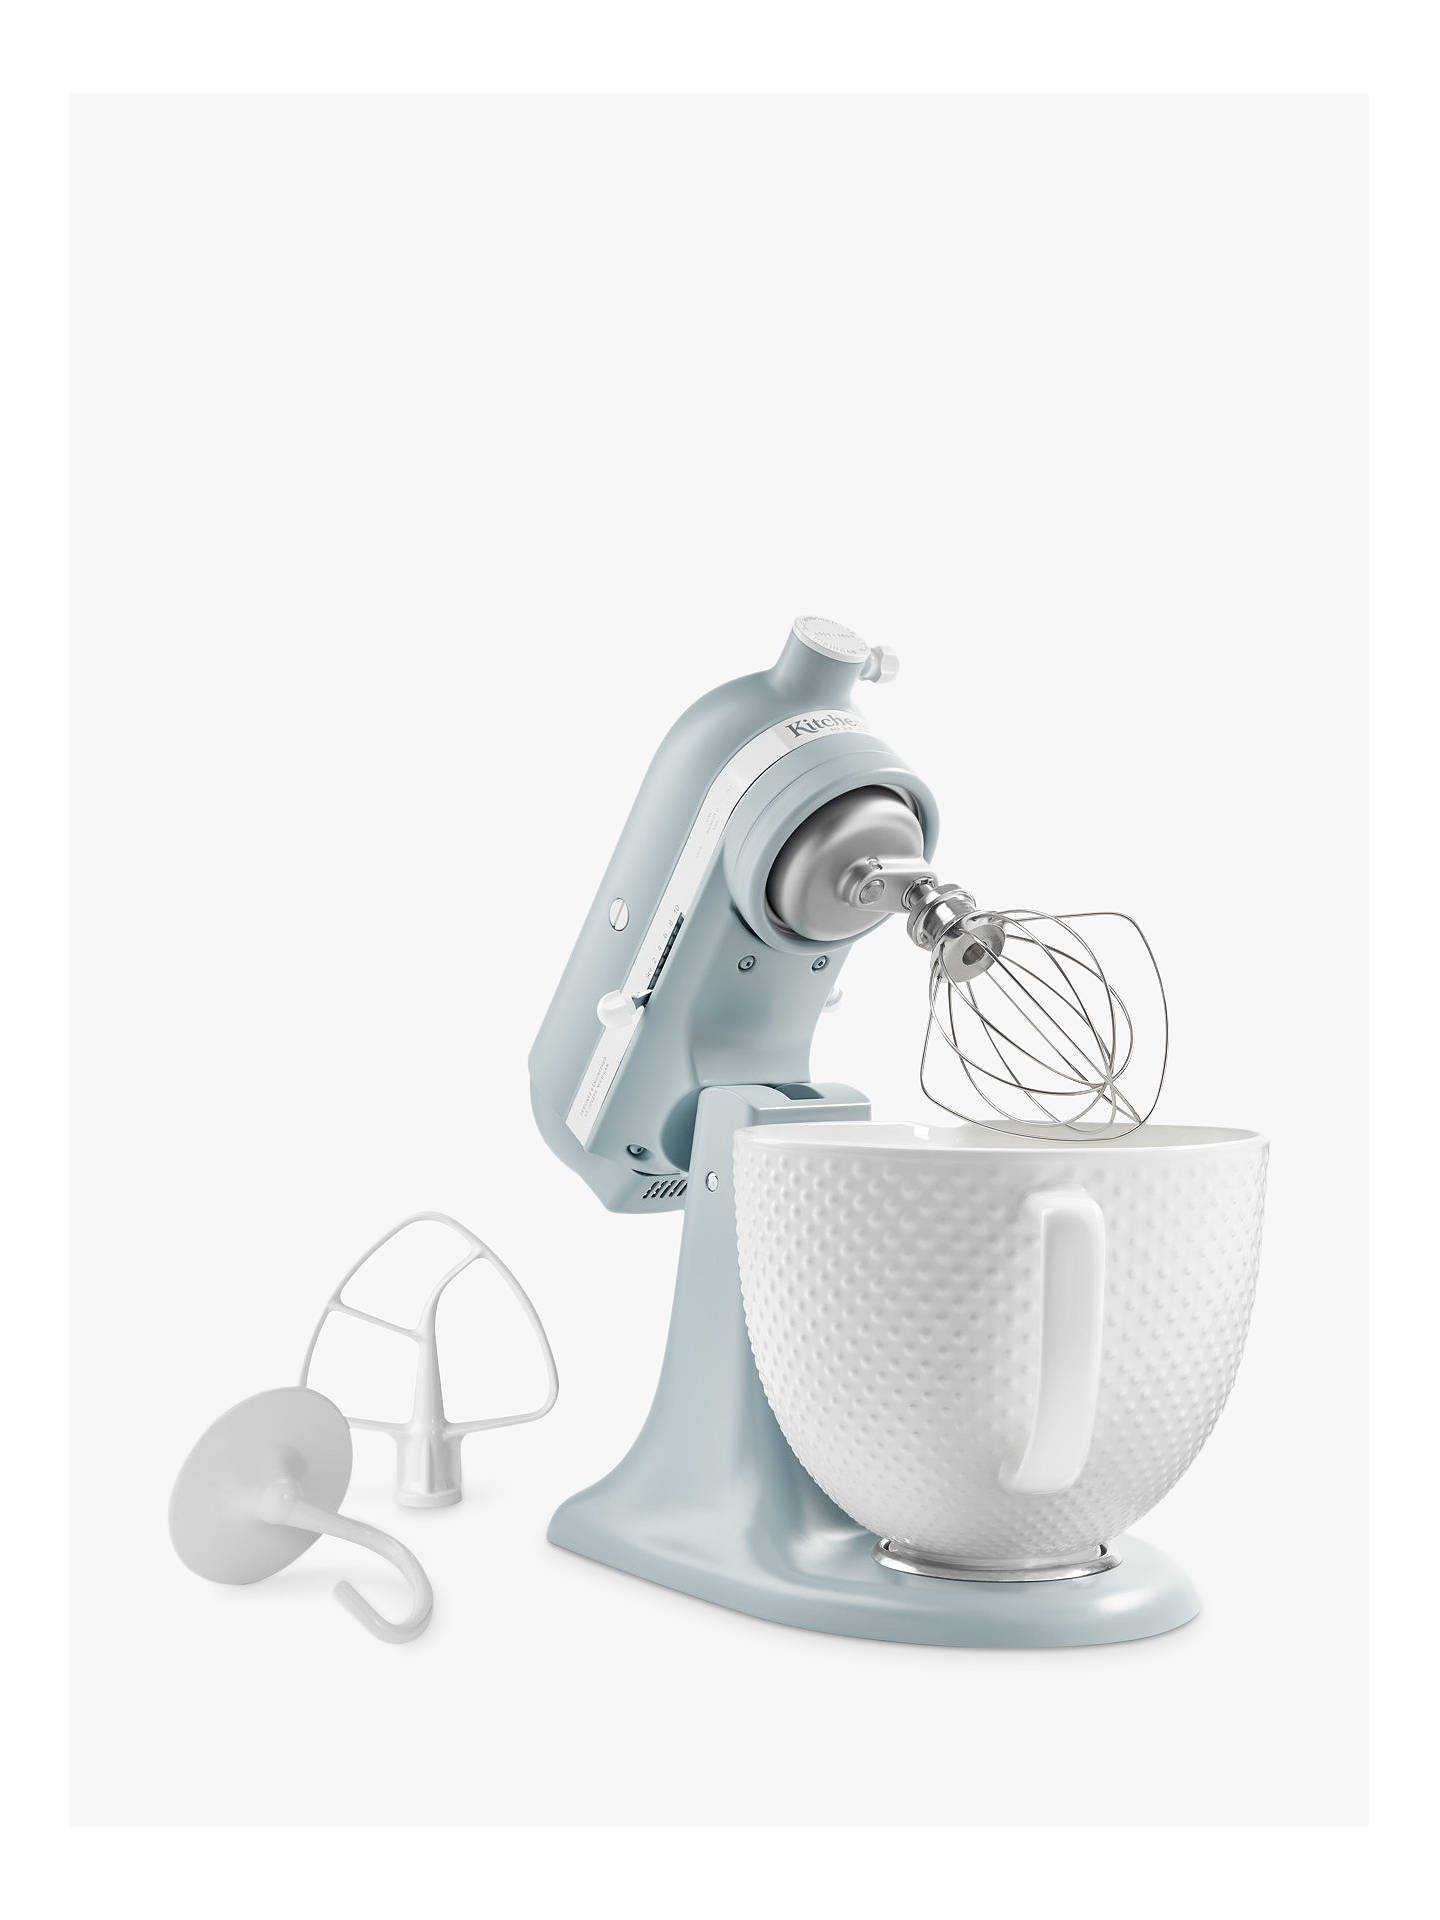 Buy KitchenAid 5KSM180RCBMB 4.8L Artisan Stand Mixer, Blue Online at johnlewis.com